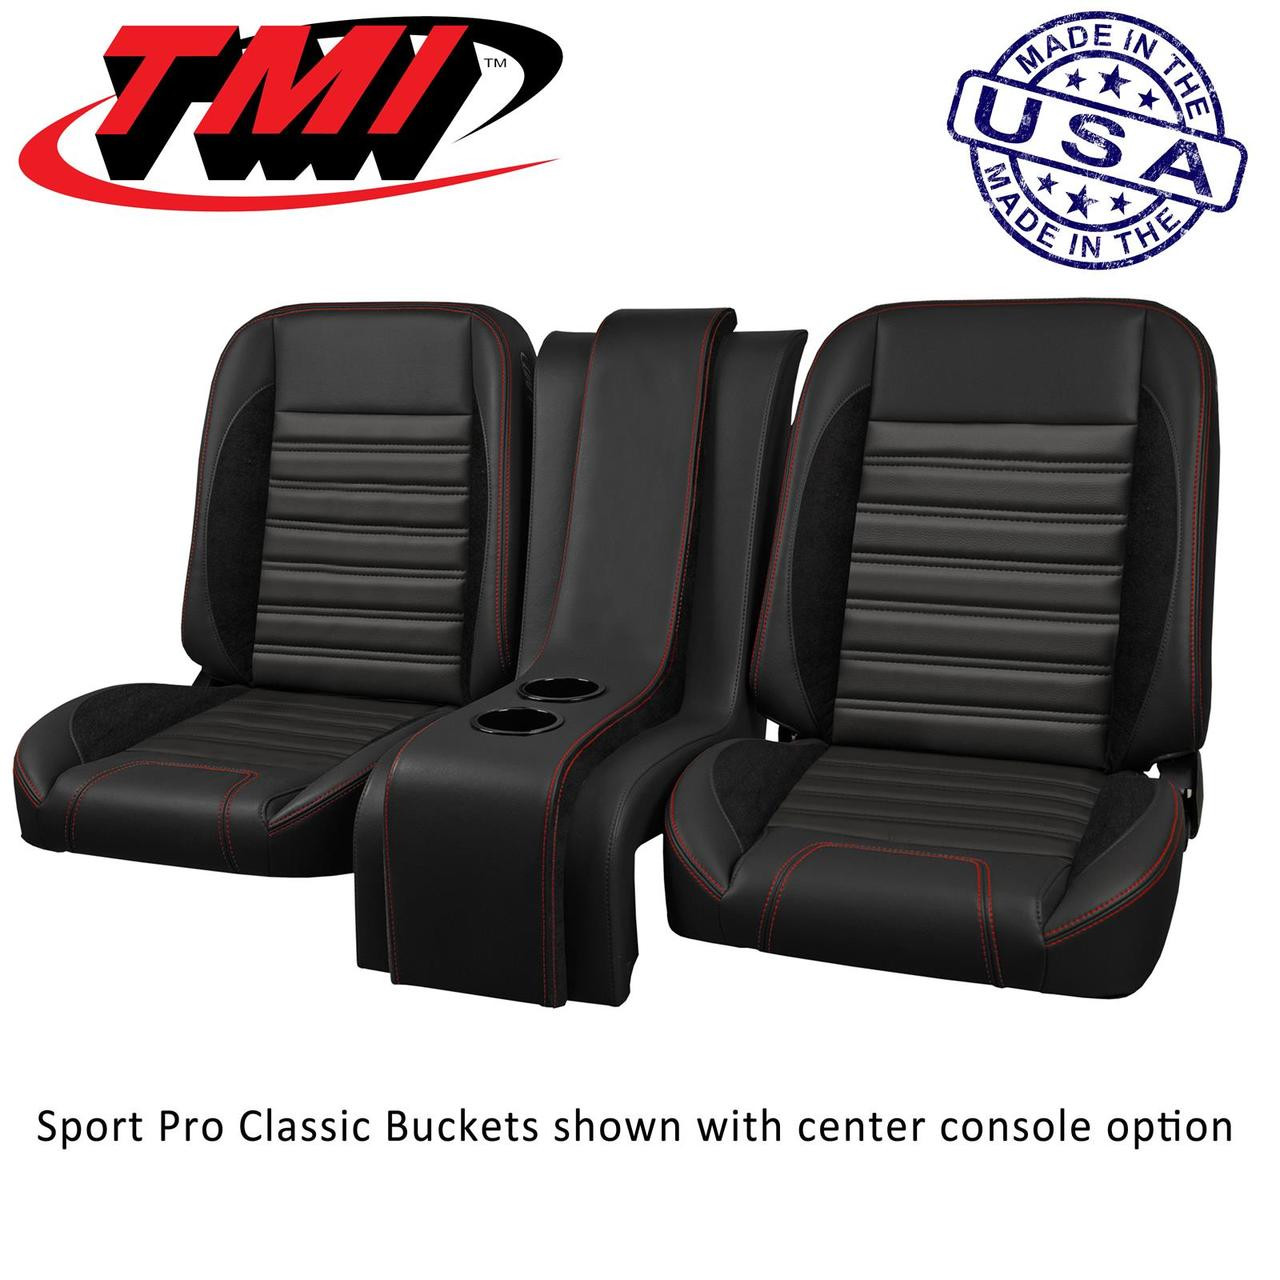 Bucket Seats For Chevy Truck >> 60 87 Chevy Truck Pro Classic Bucket Seats